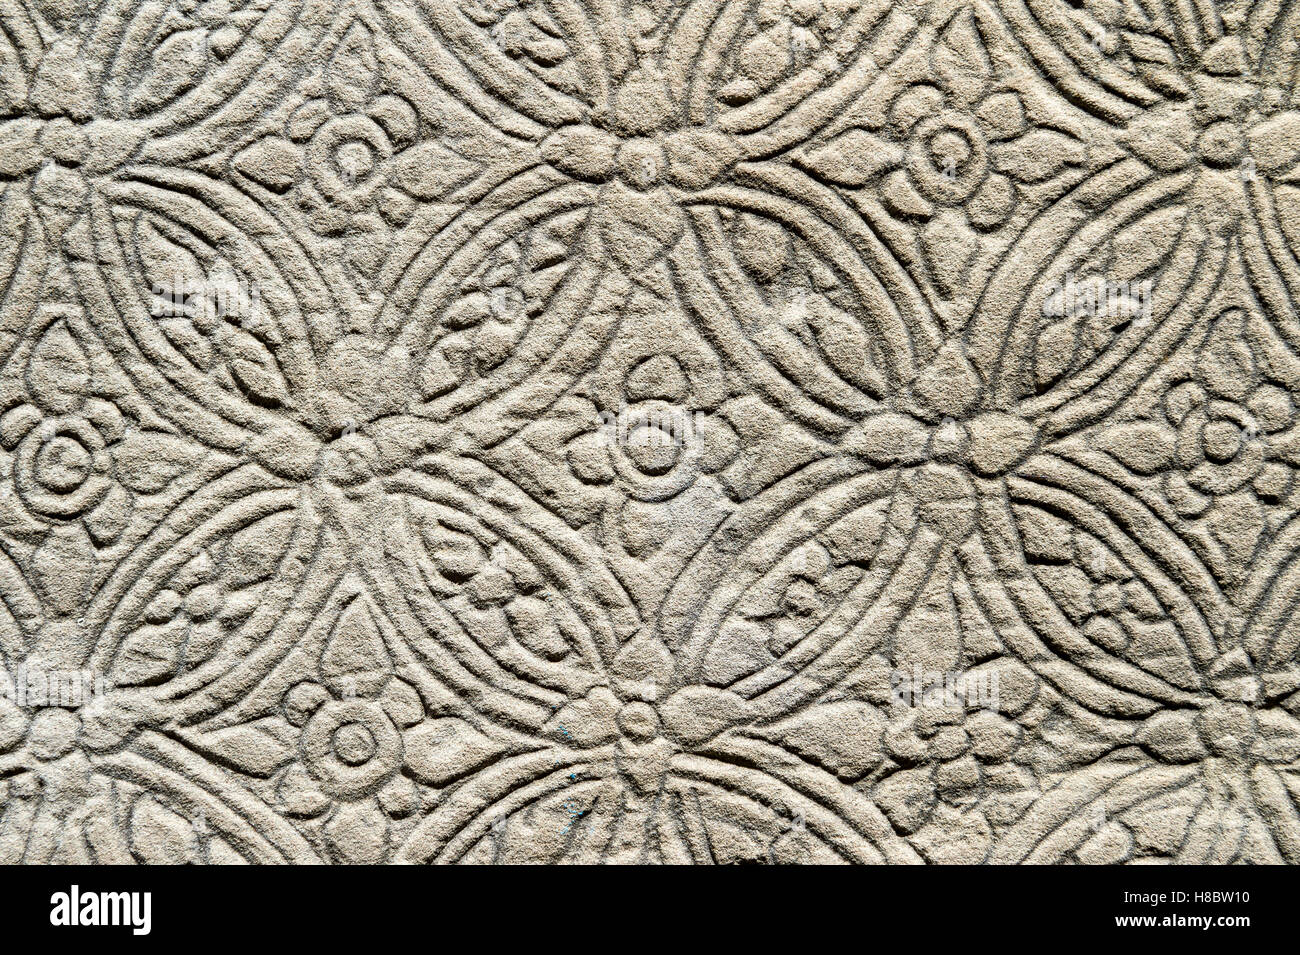 Detail close up of the textured pattern of a carving in relief on